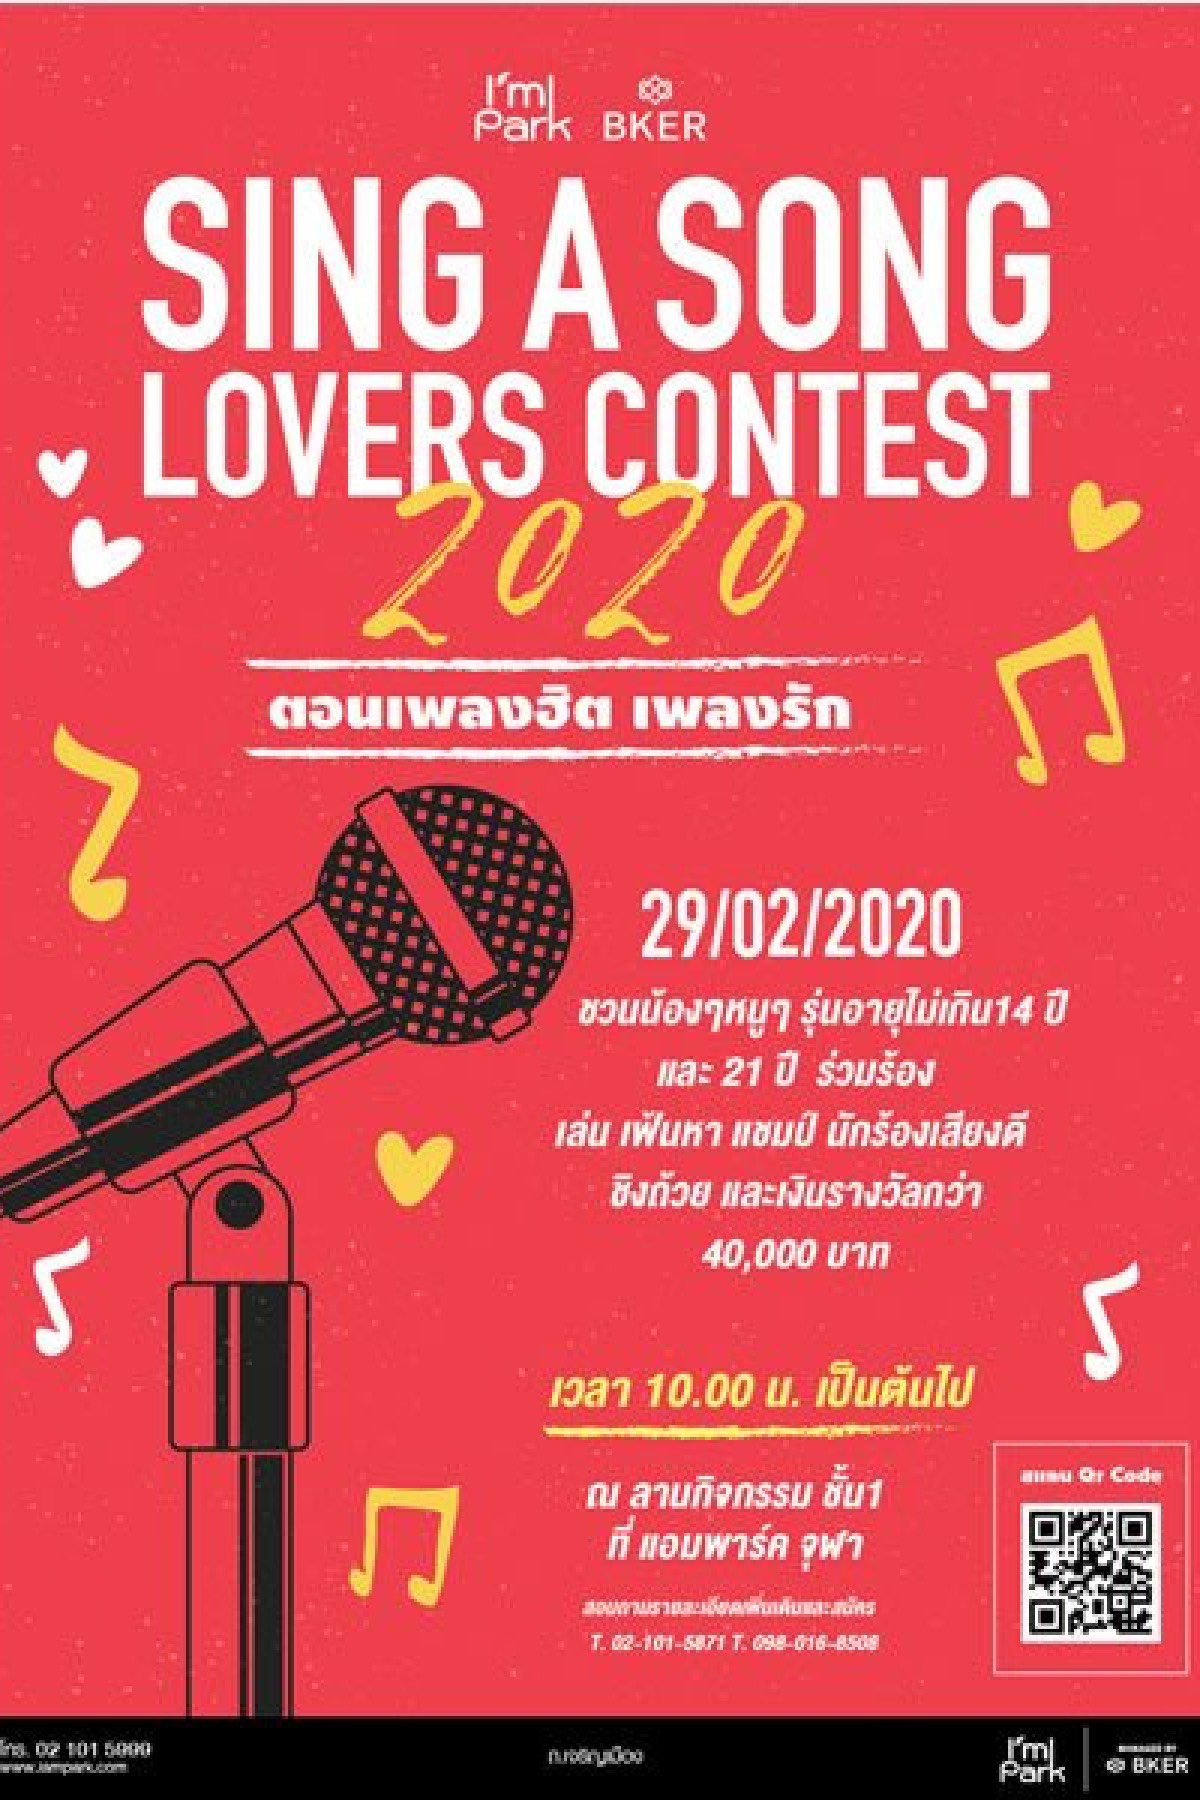 SING A SONG LOVER CONTEST 2020